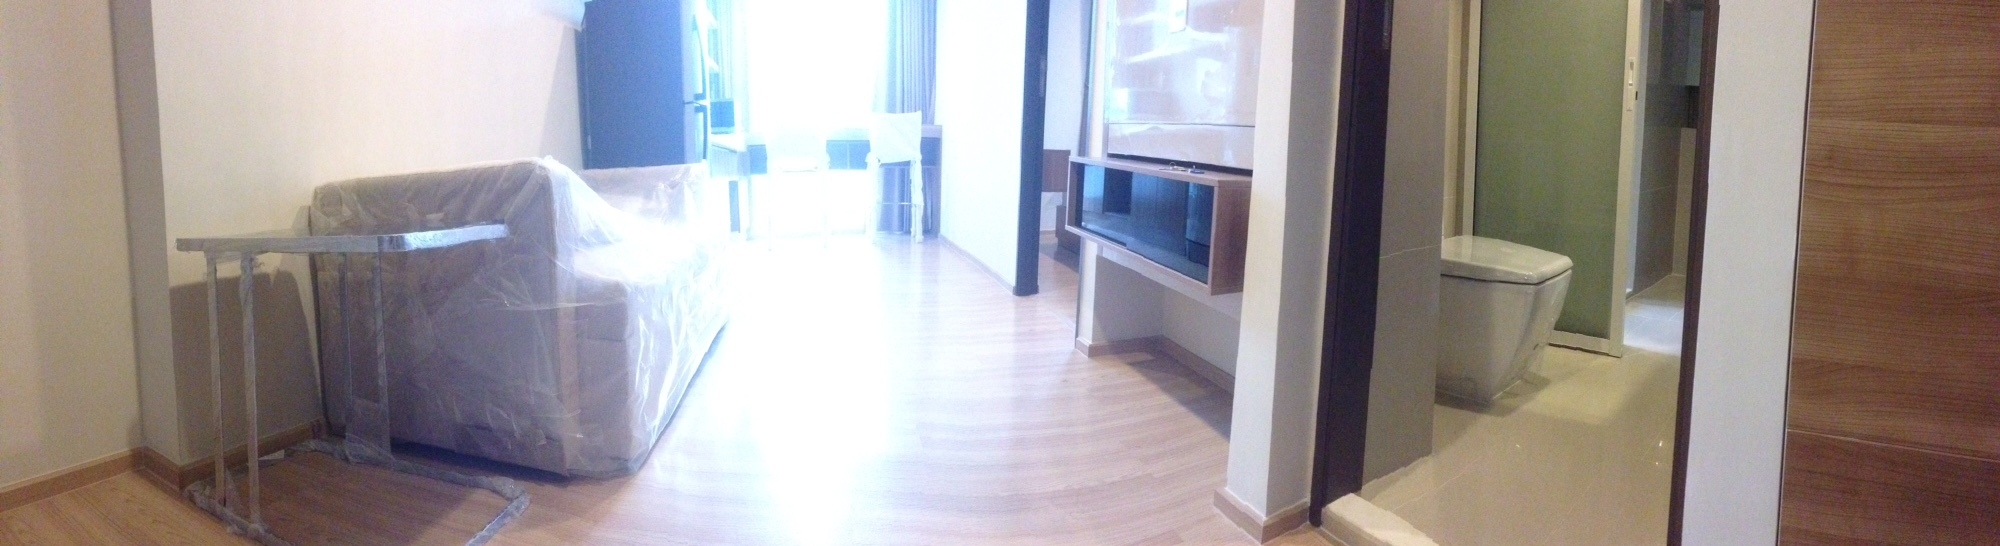 RE/MAX All Star Realty Agency's Breathtaking views new condo for rent 18,000 at Rhythm Sathorn 21 11